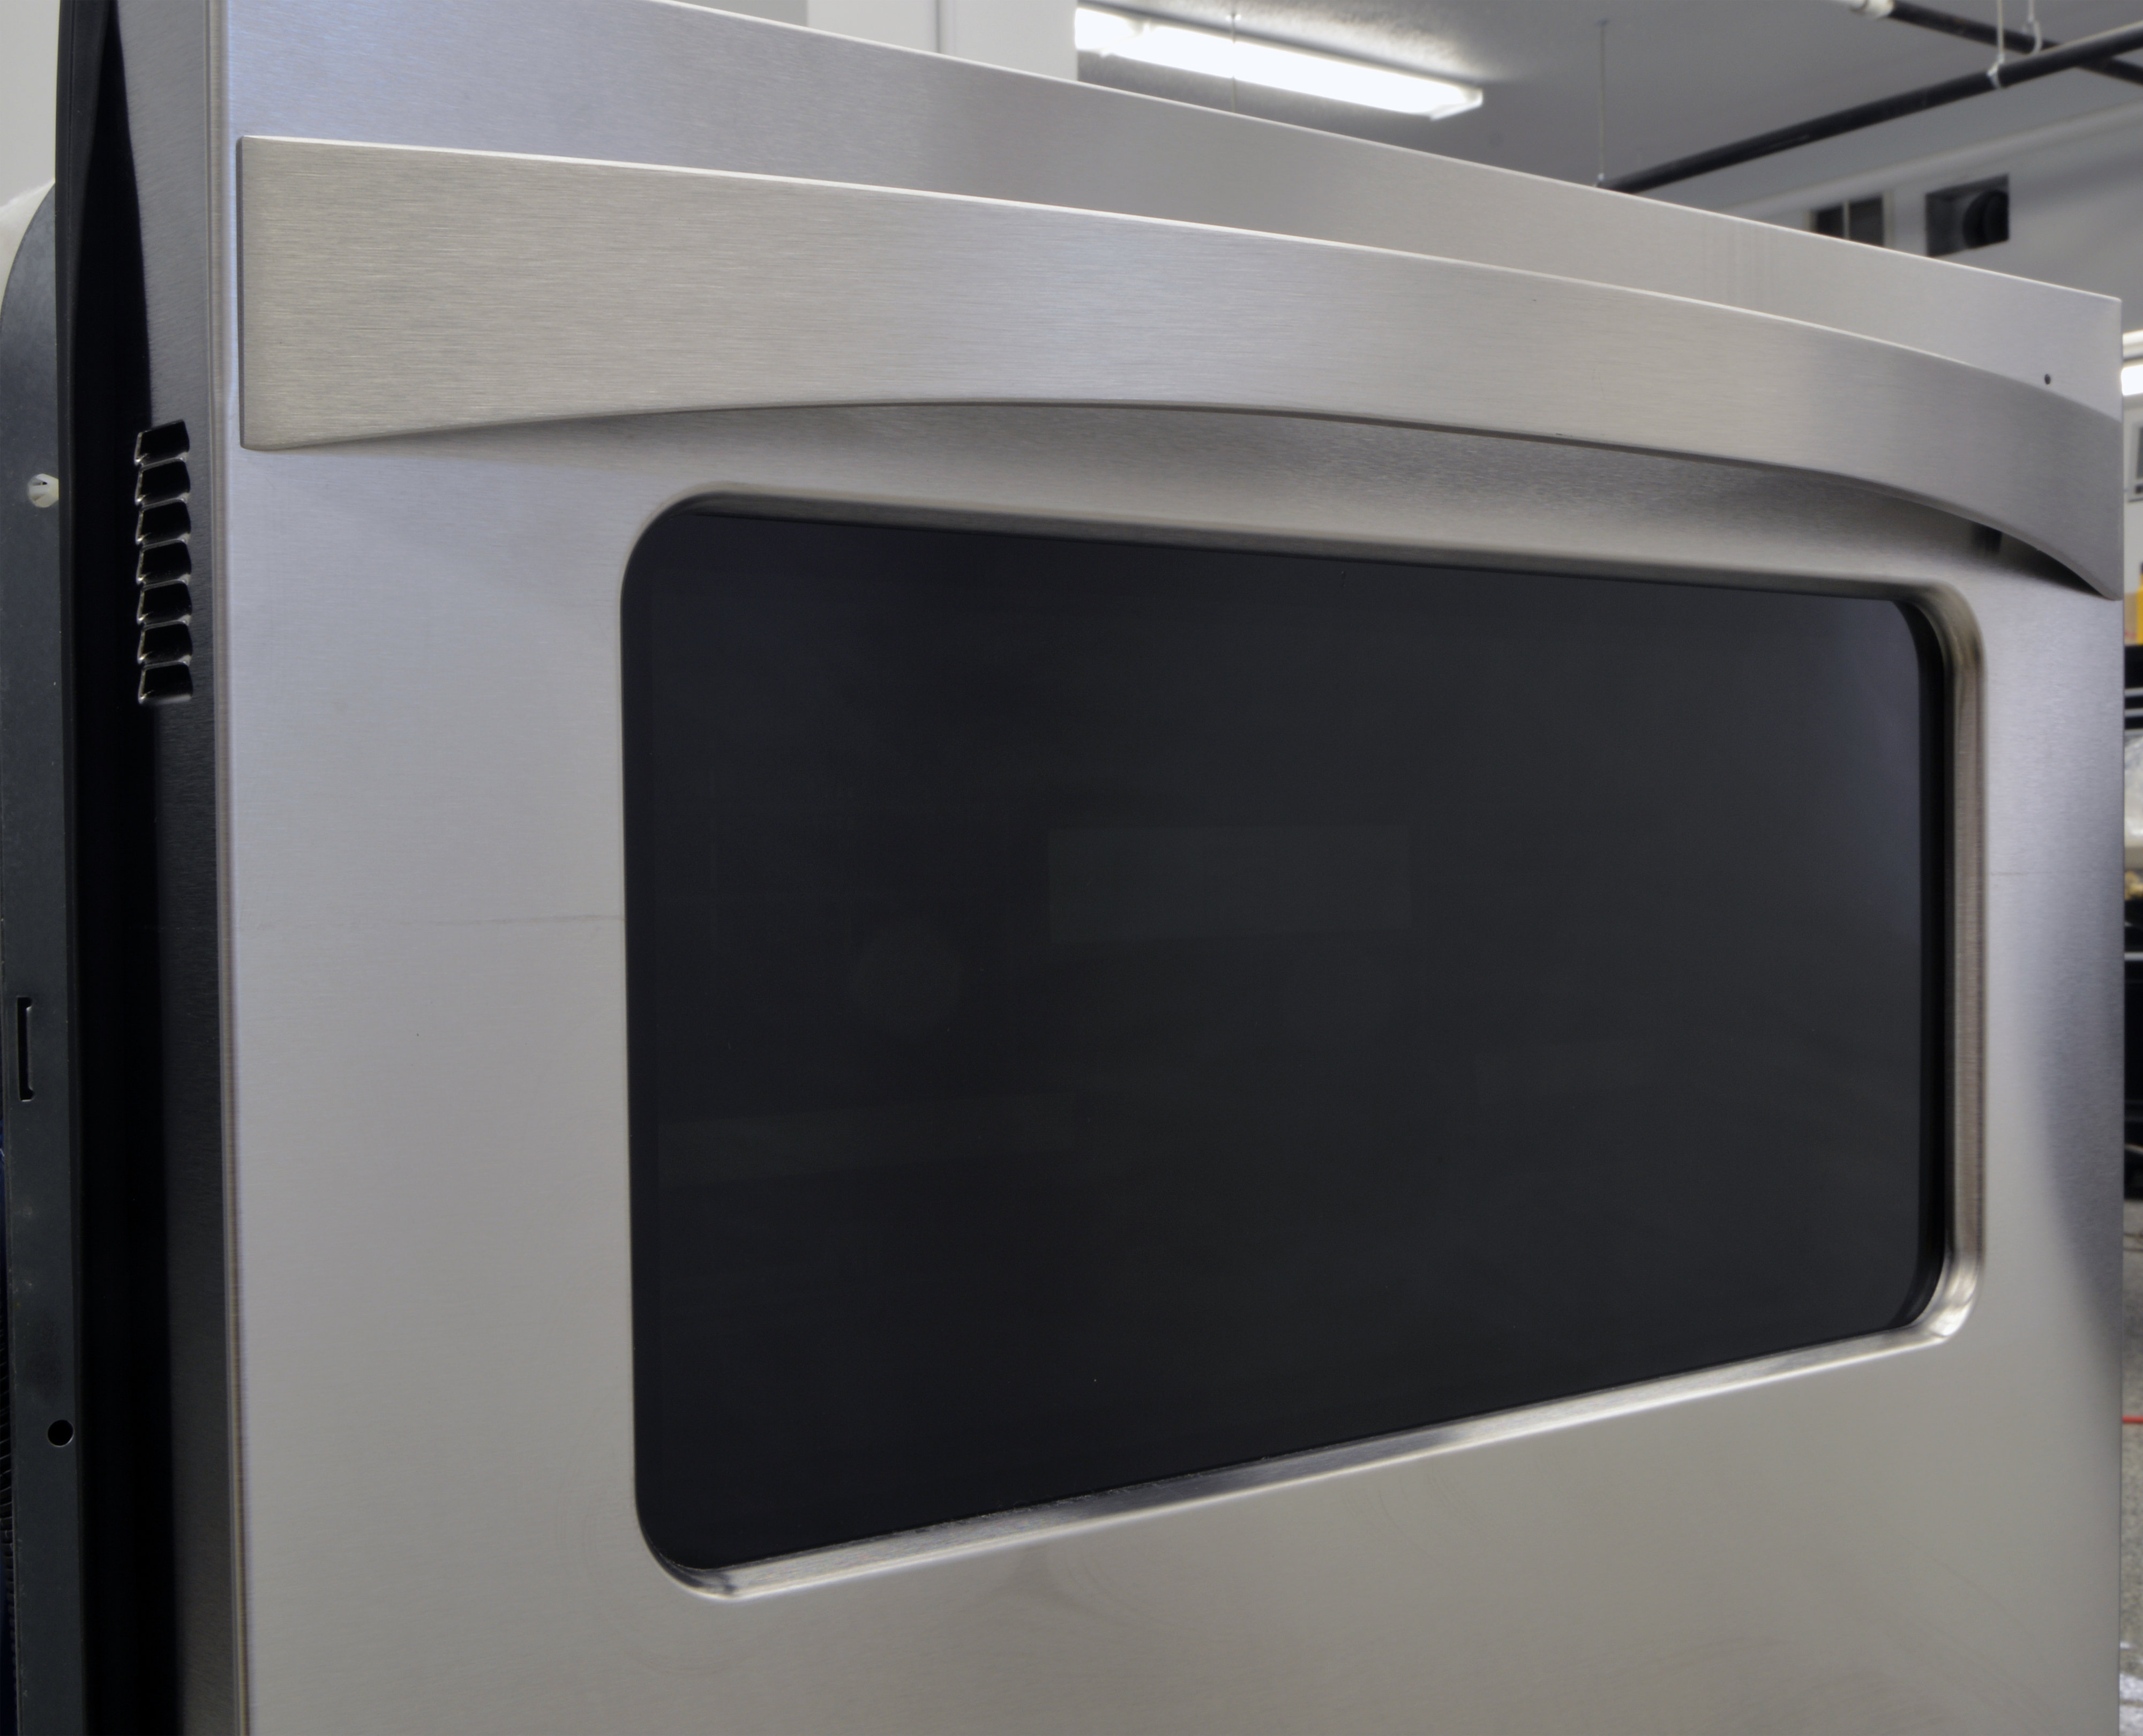 Showing off the Kenmore 14823's window